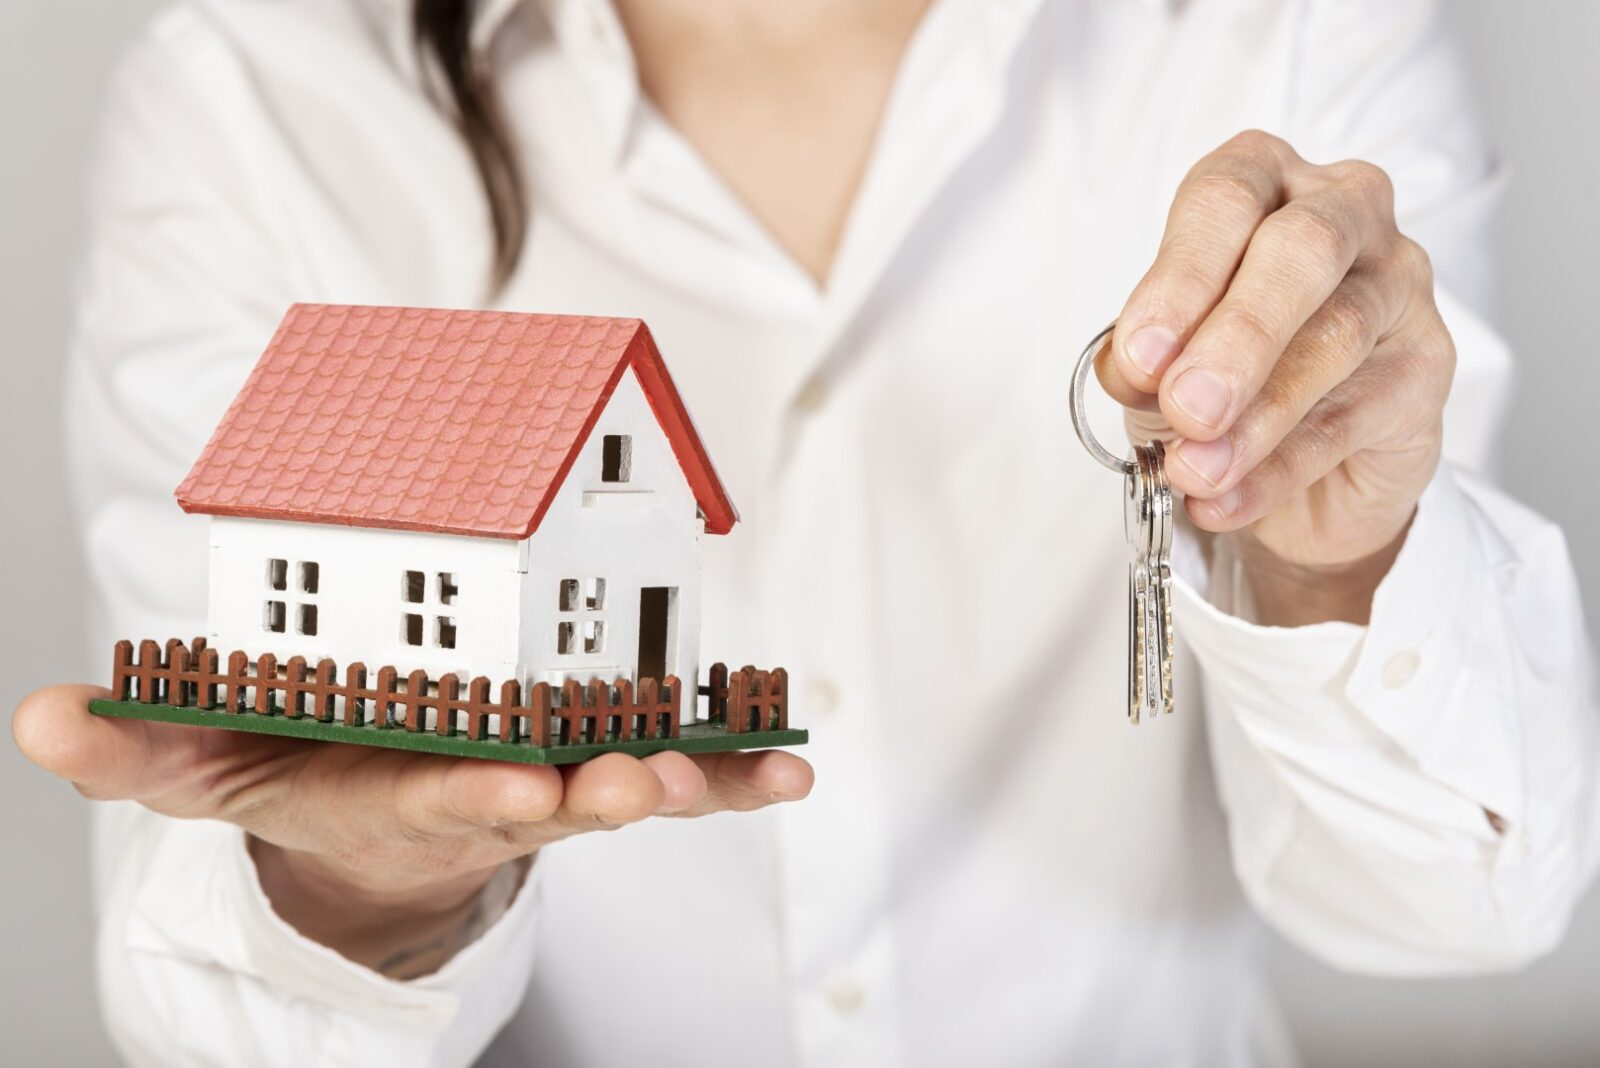 female-holding-a-toy-model-house-and-keys